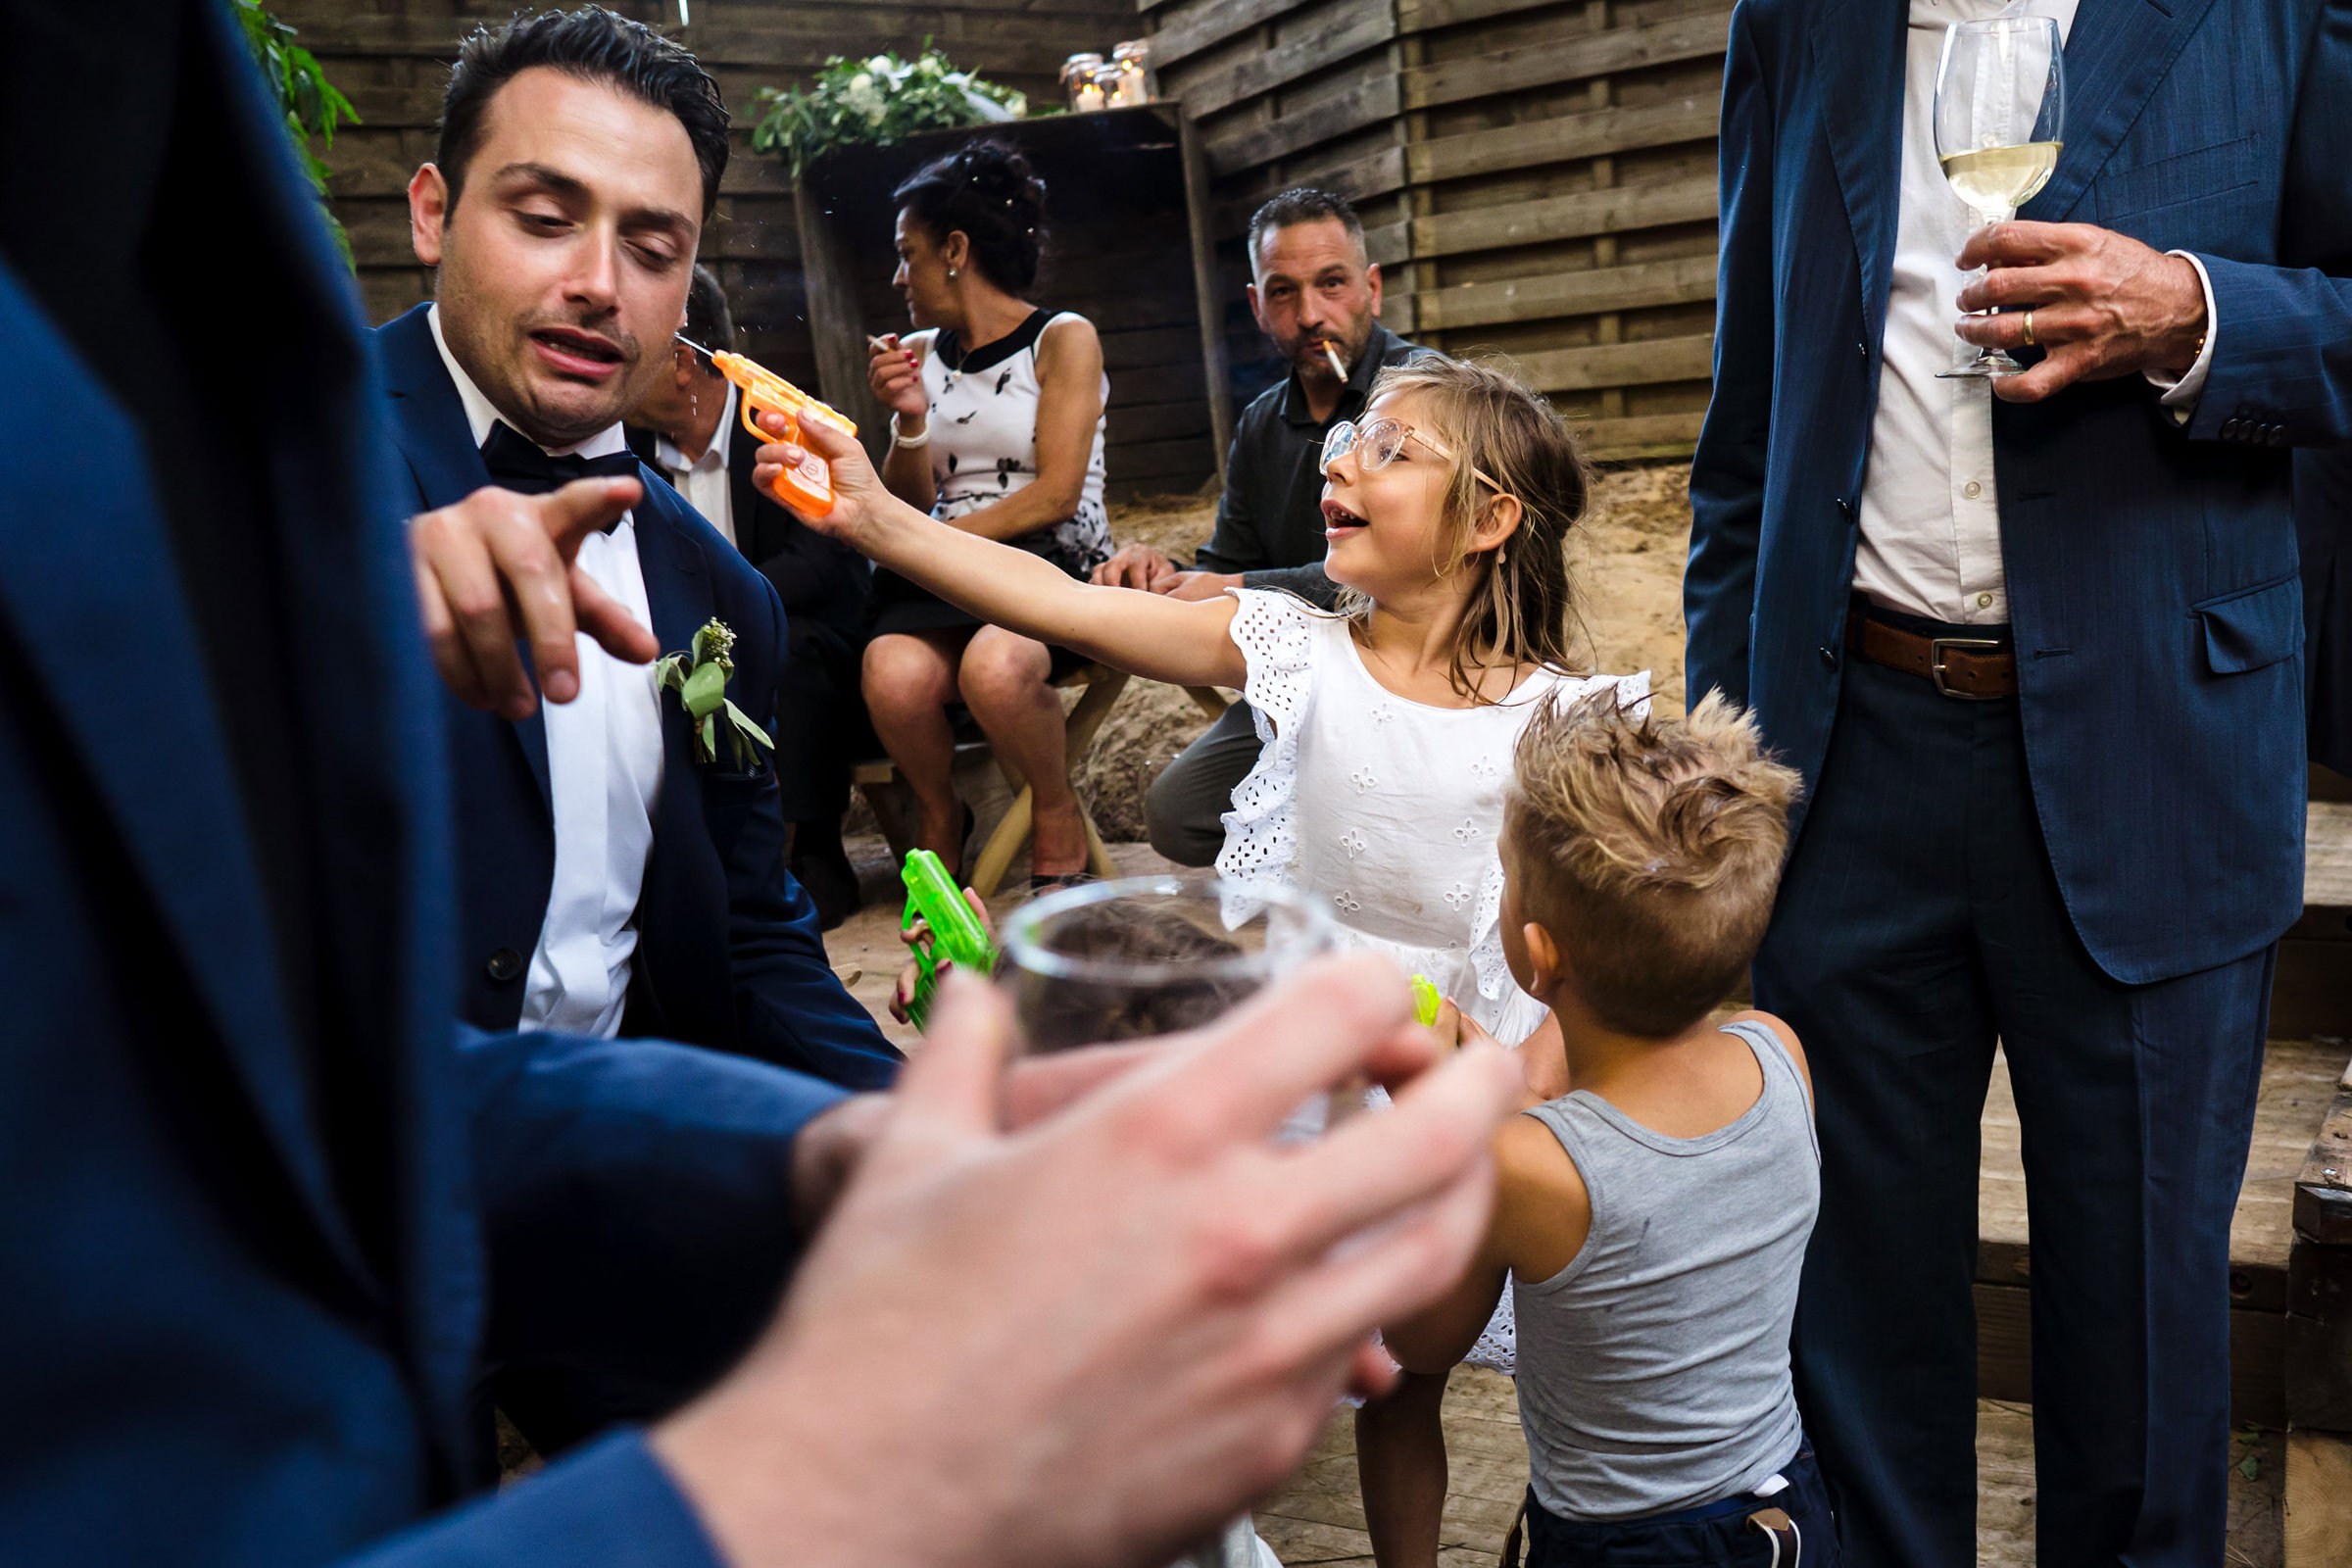 Funny photo of little girl shooting spraygun at groom, photo by Philippe Swiggers